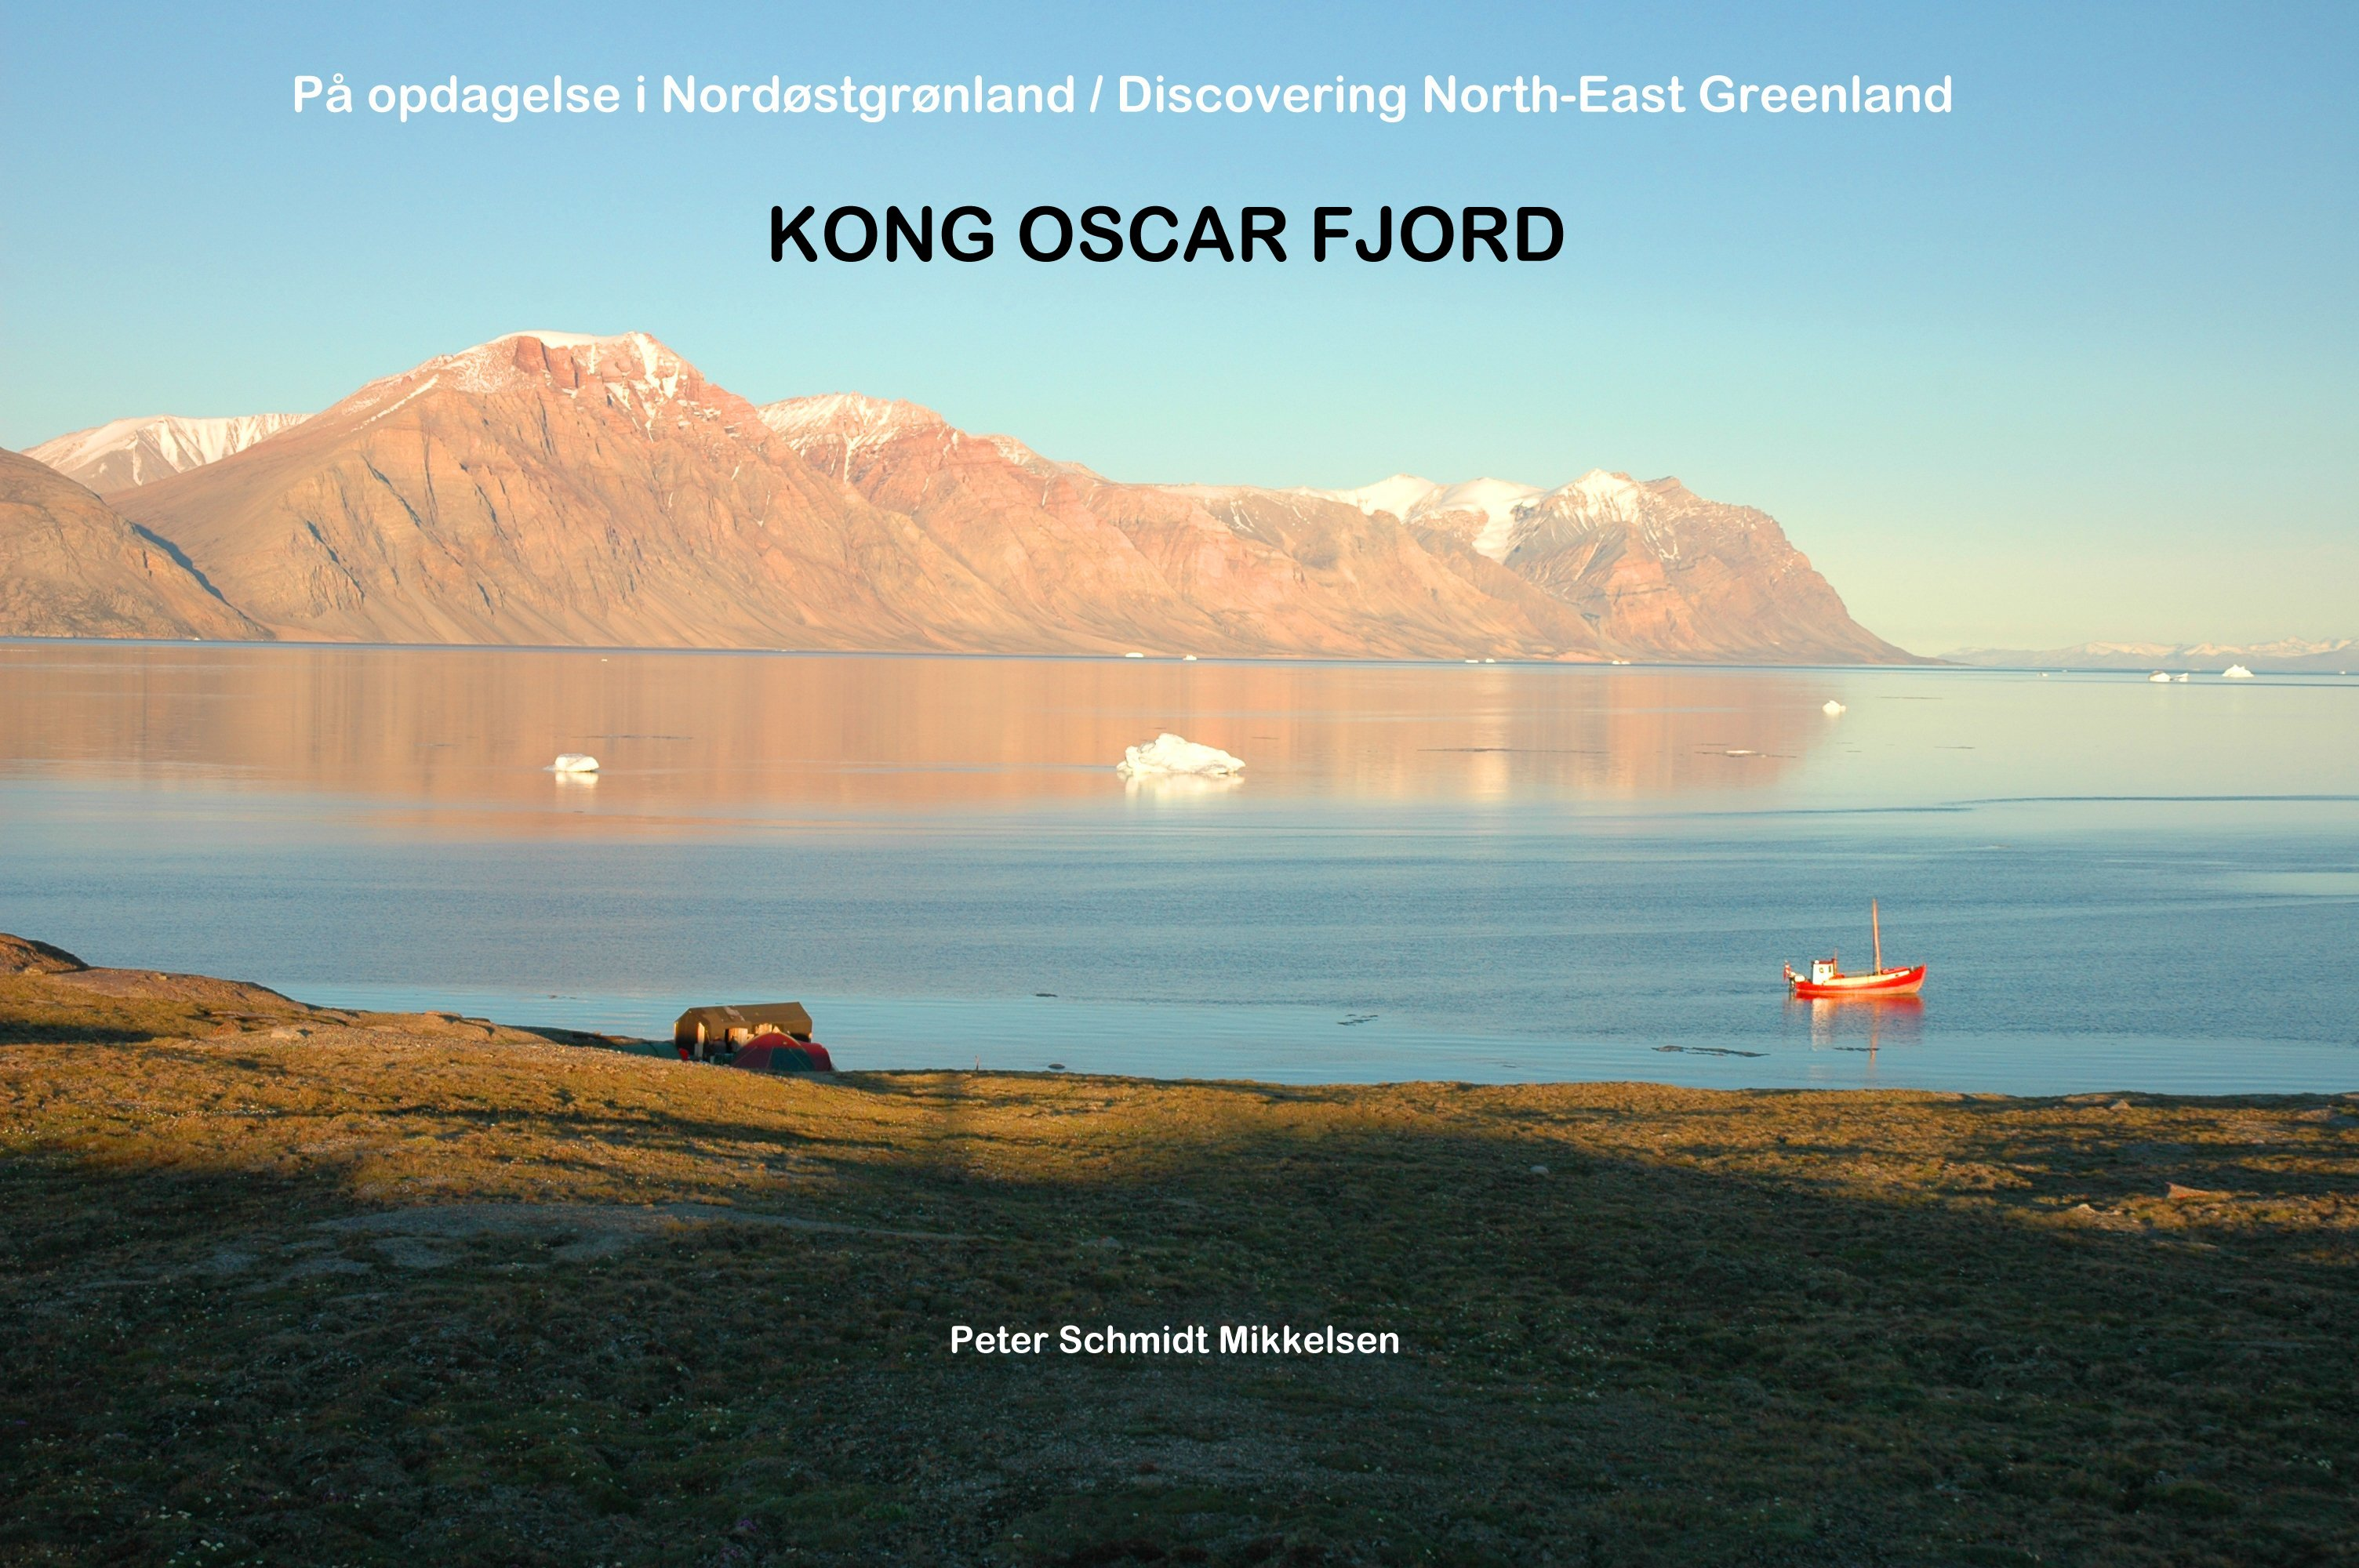 Discoreving North-East Greenland